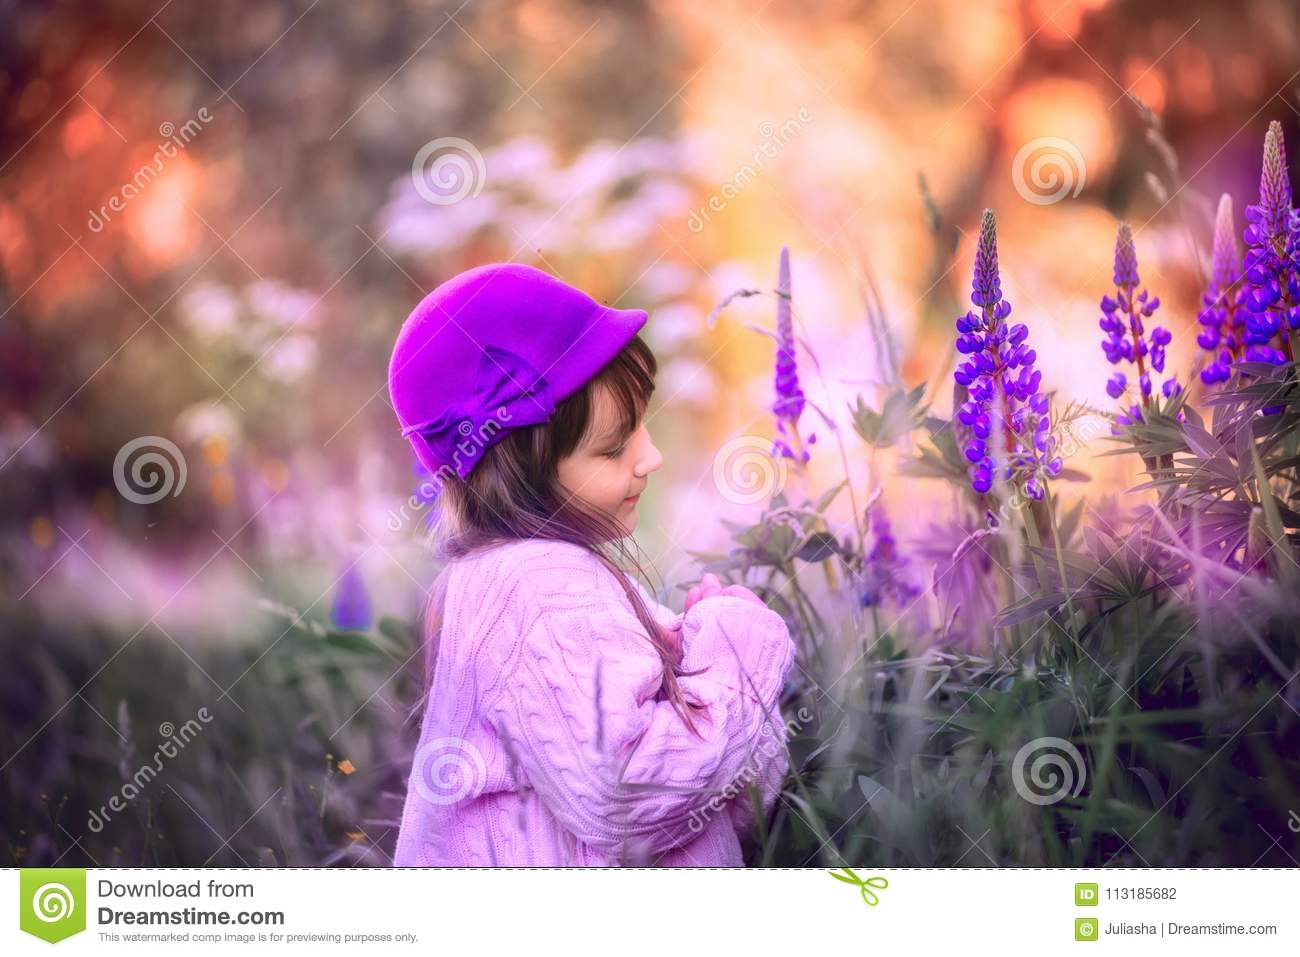 Girl portrait with lupine flowers